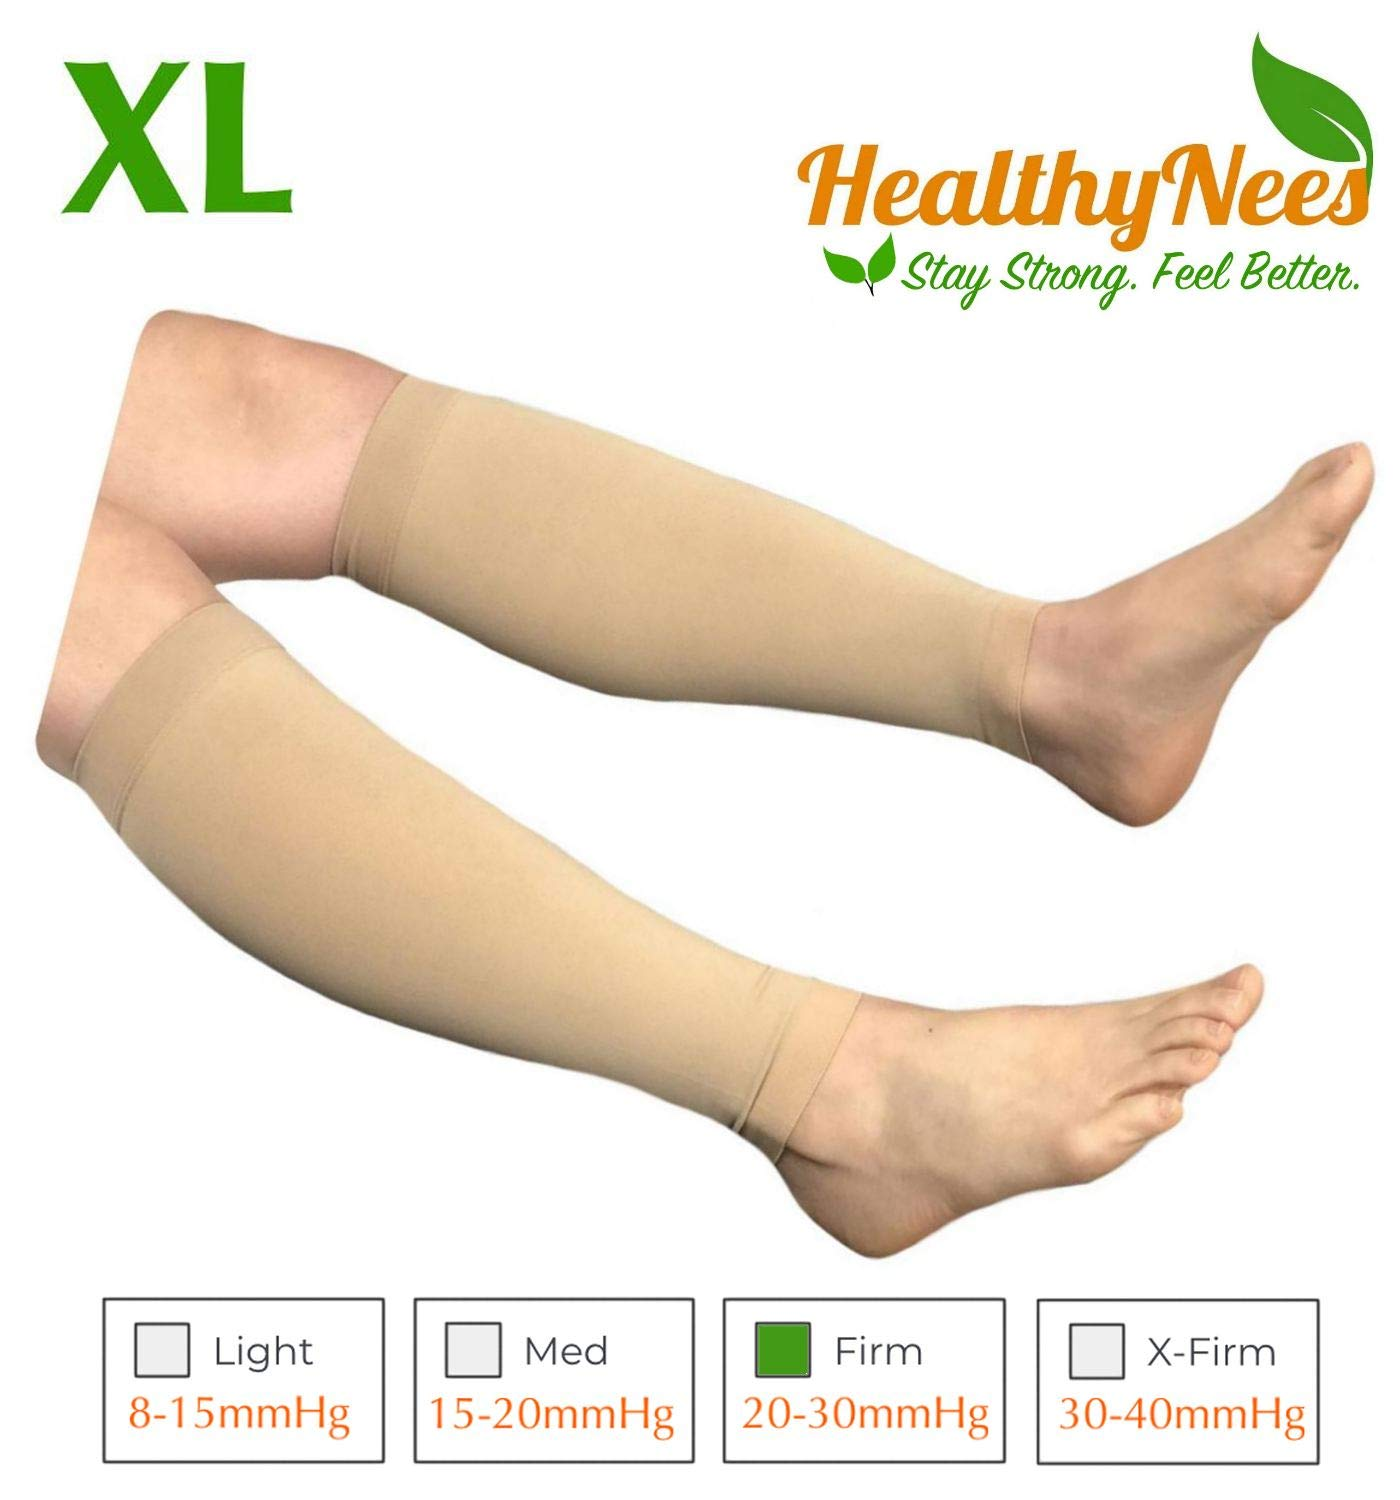 HealthyNees Shin Calf Sleeve 20-30 mmHg Medical Compression Circulation Extra Wide Plus Size Big Tall Leg Thick Calves Firm Support (Beige, Regular Calf XL) by HealthyNees